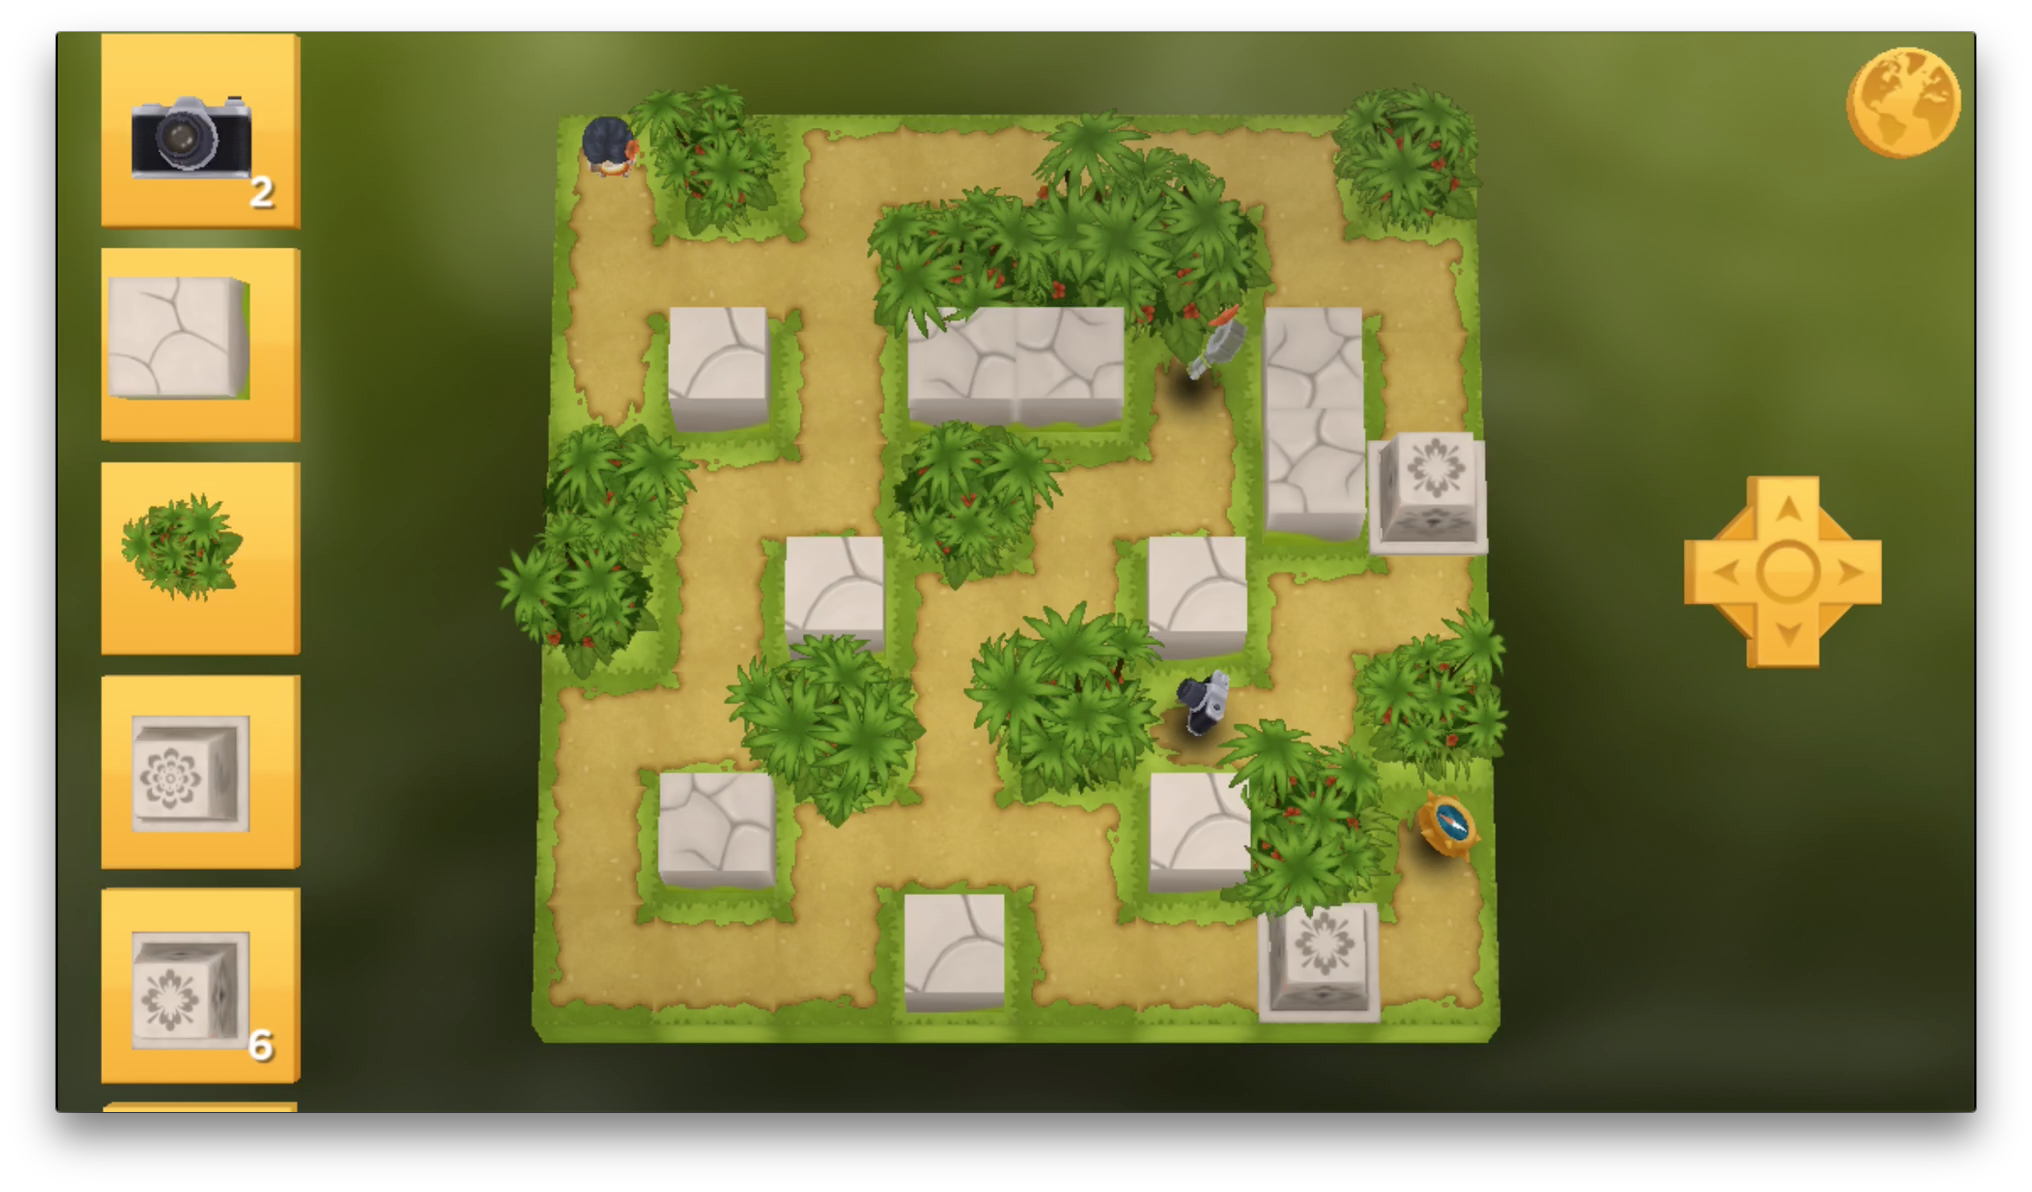 The final layout of the puzzlewith the same general layout as above